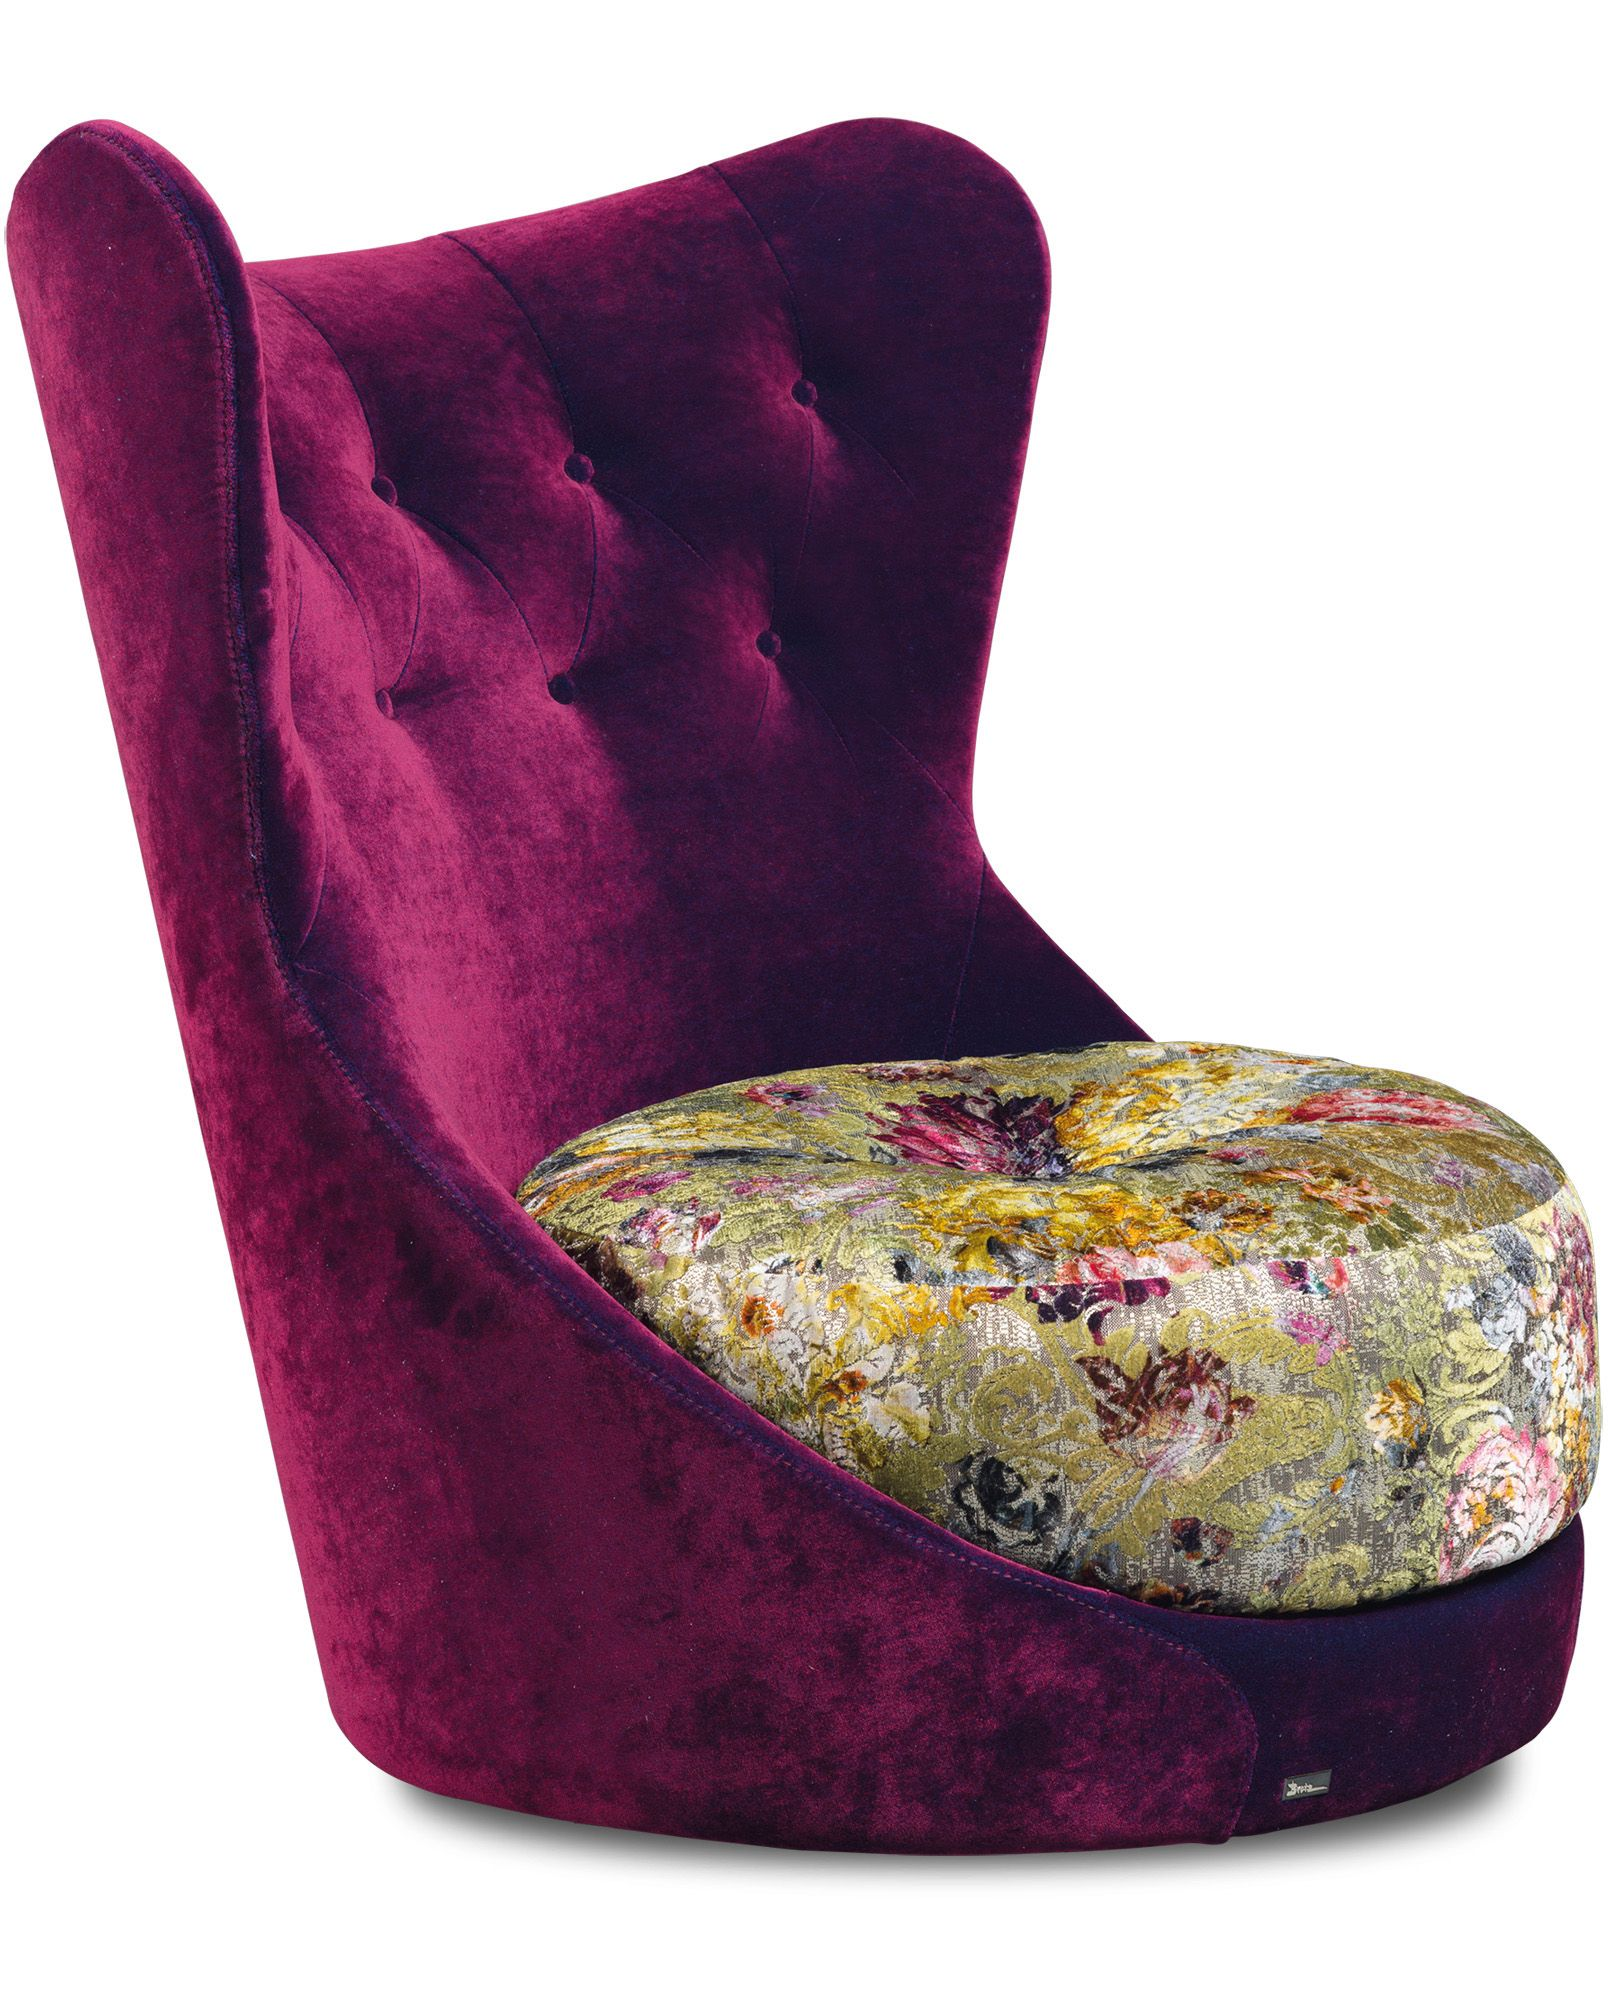 Bretz Sofa Sviwelchair From Bretz For The Rockers Who Likes Purple O